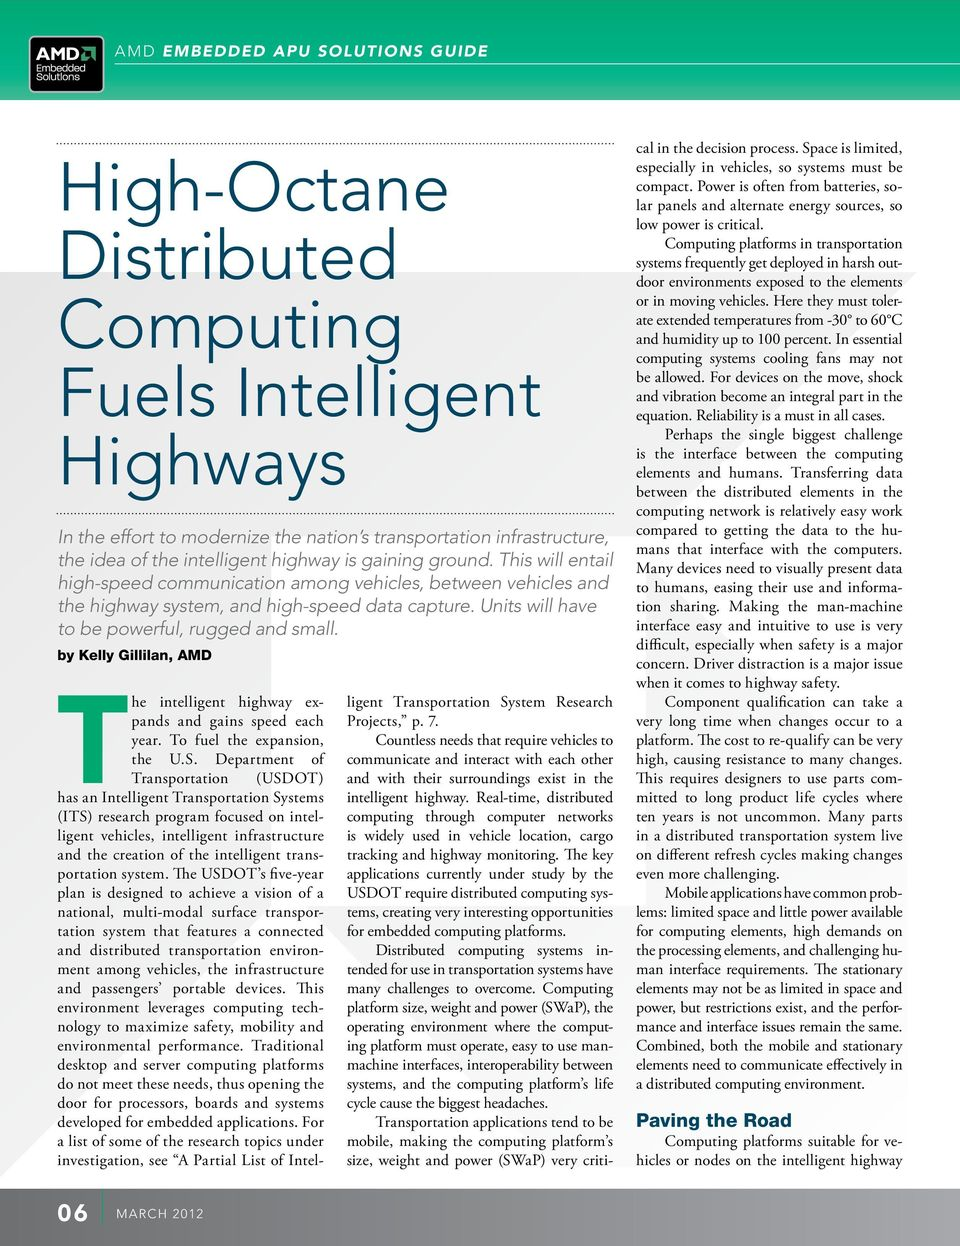 by Kelly Gillilan, AMD The intelligent highway expands and gains speed each year. To fuel the expansion, the U.S.